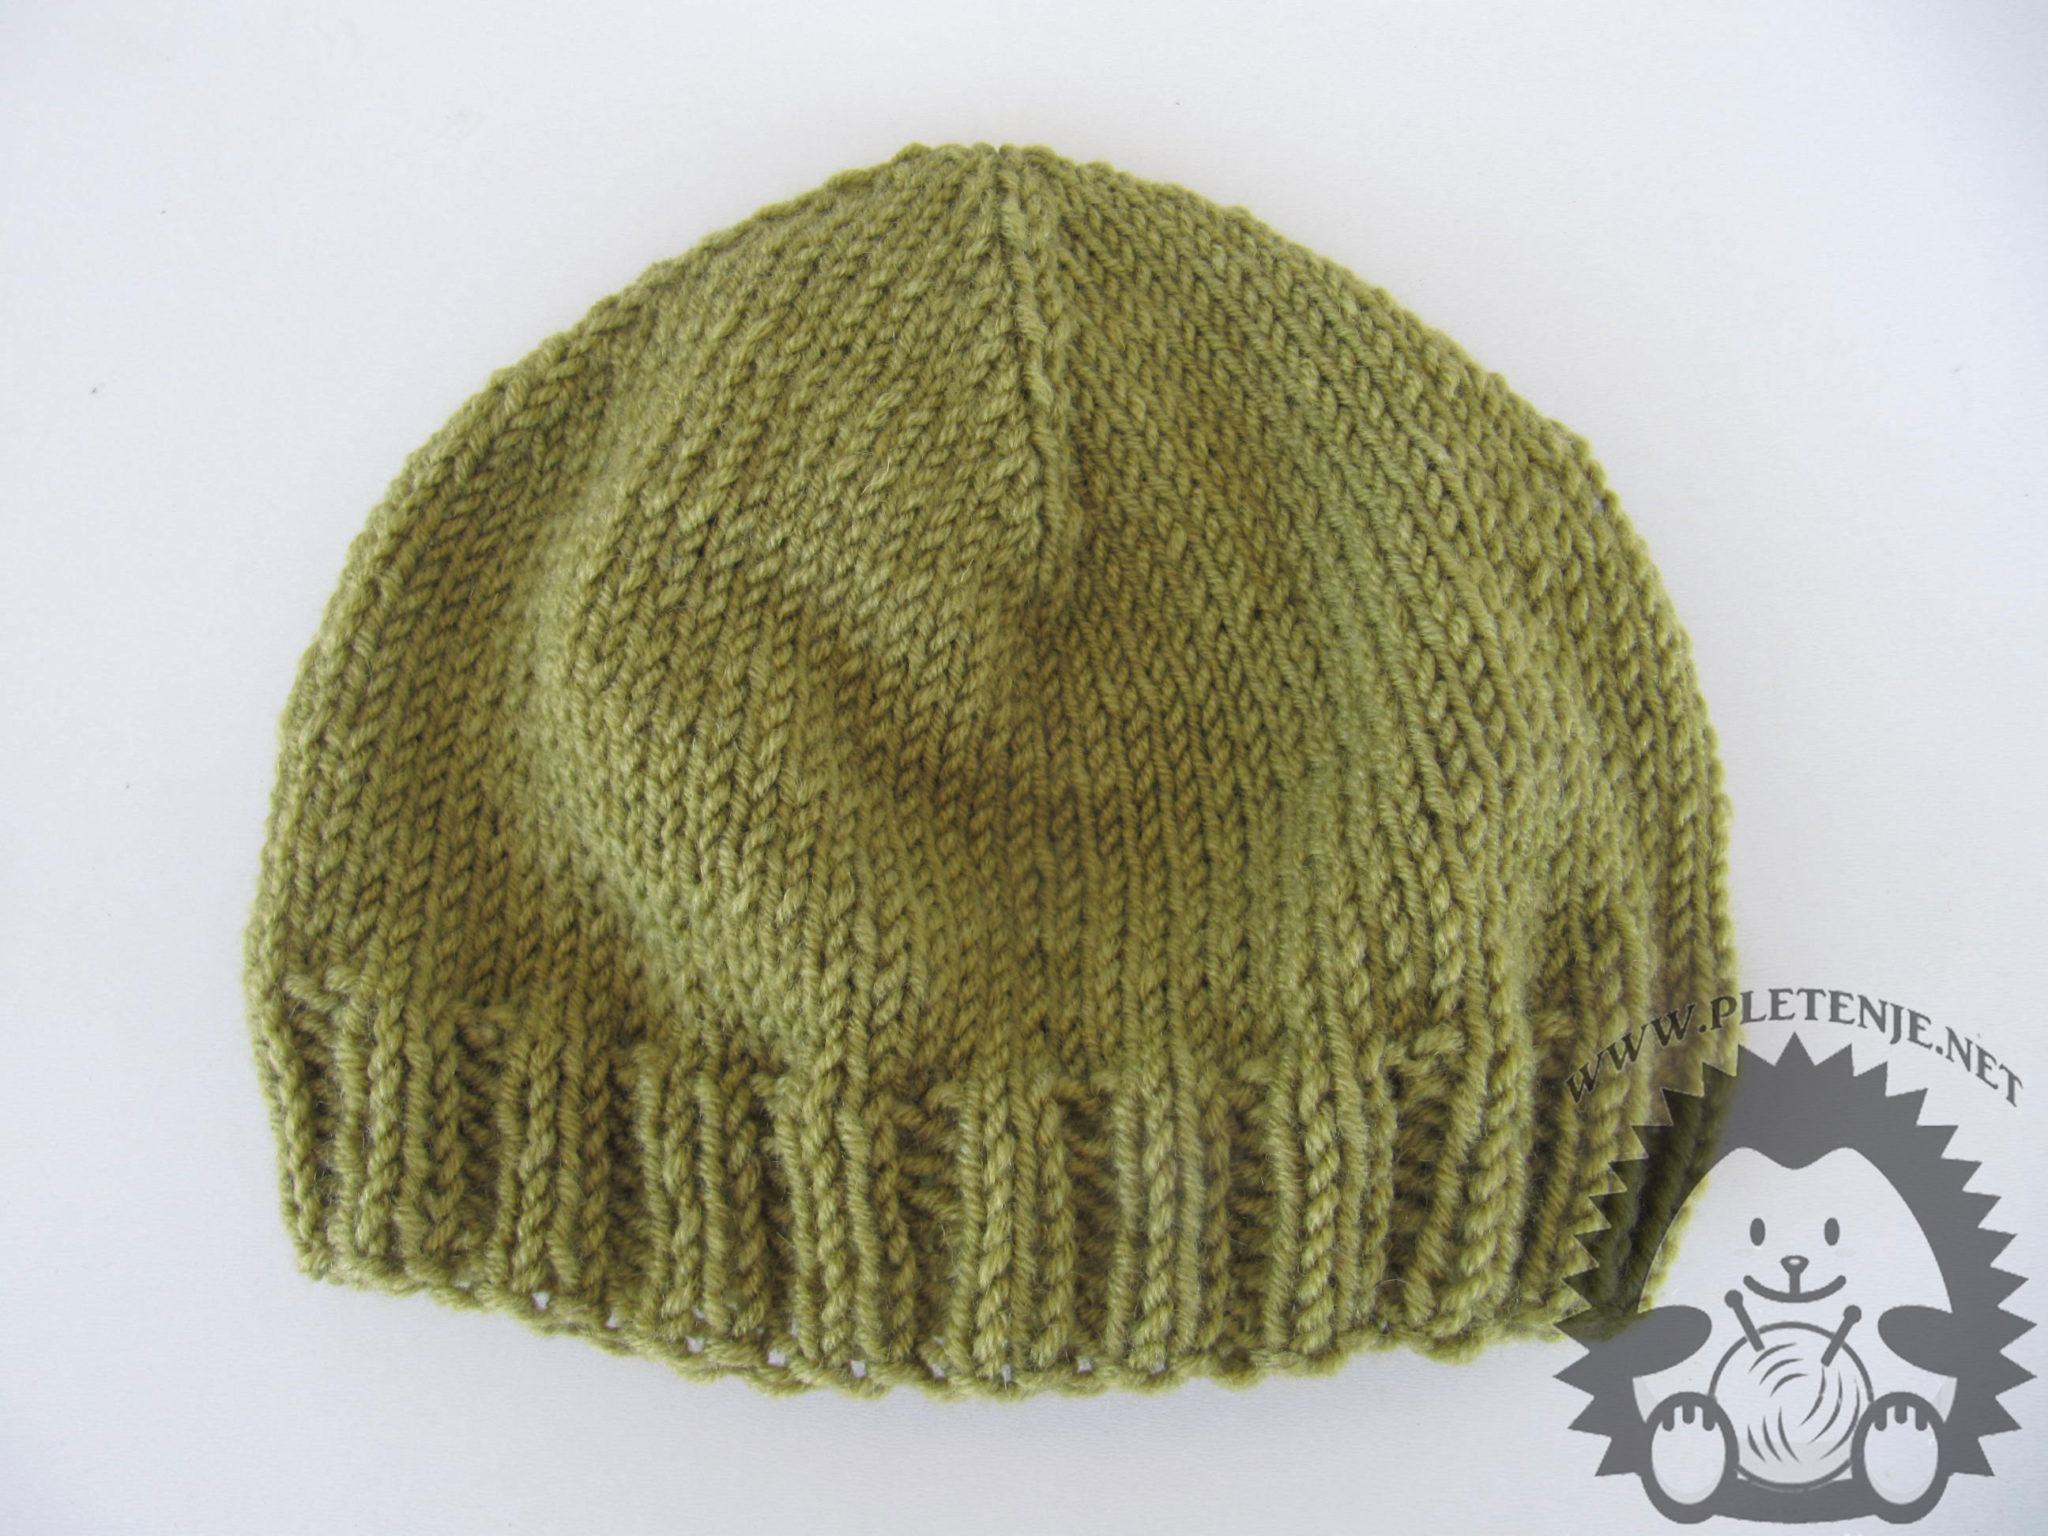 Knitted Cap - Home